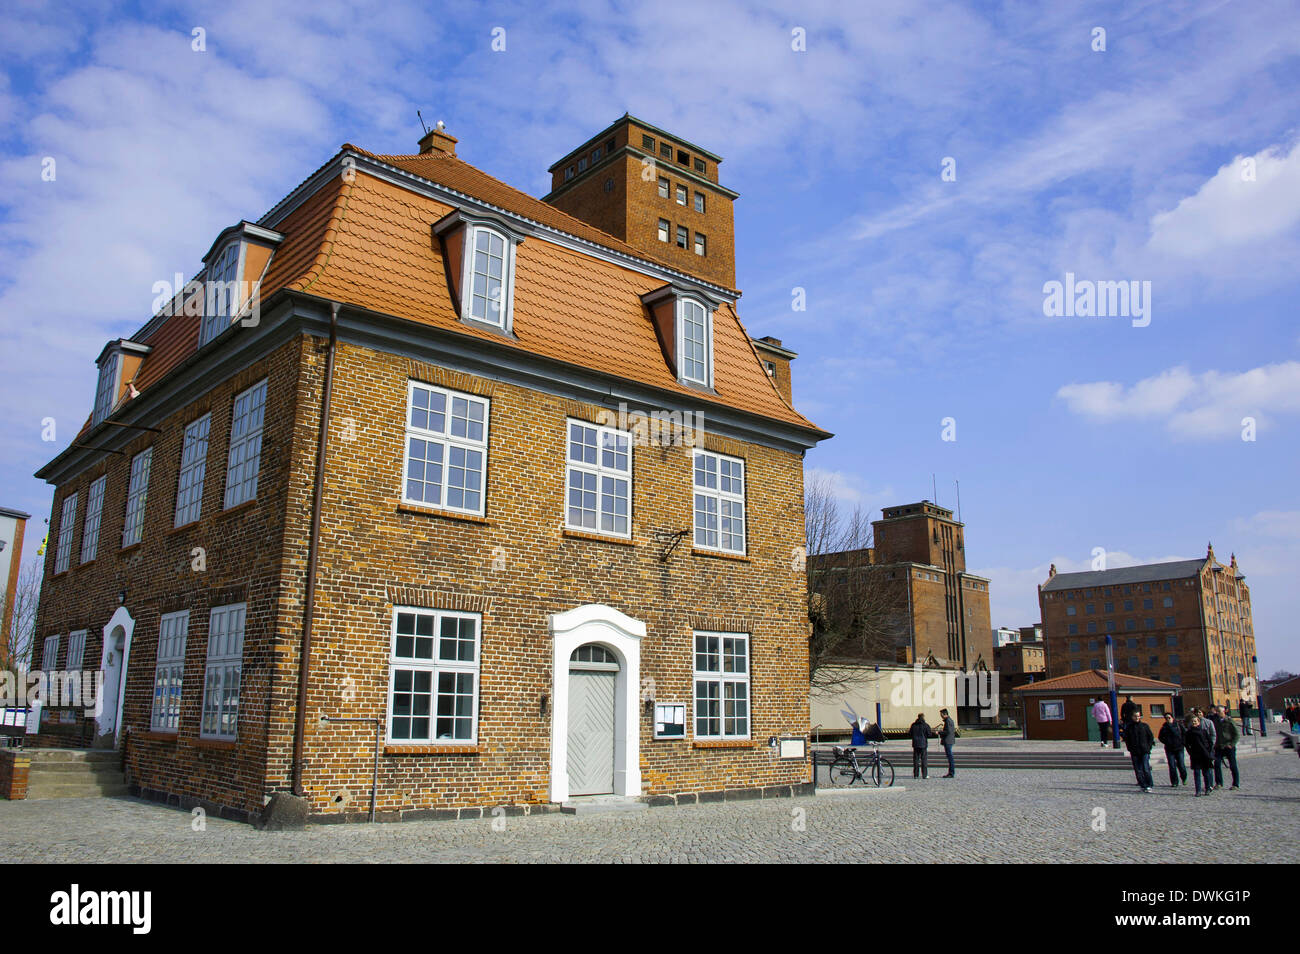 Tree house, Wismar - Stock Image